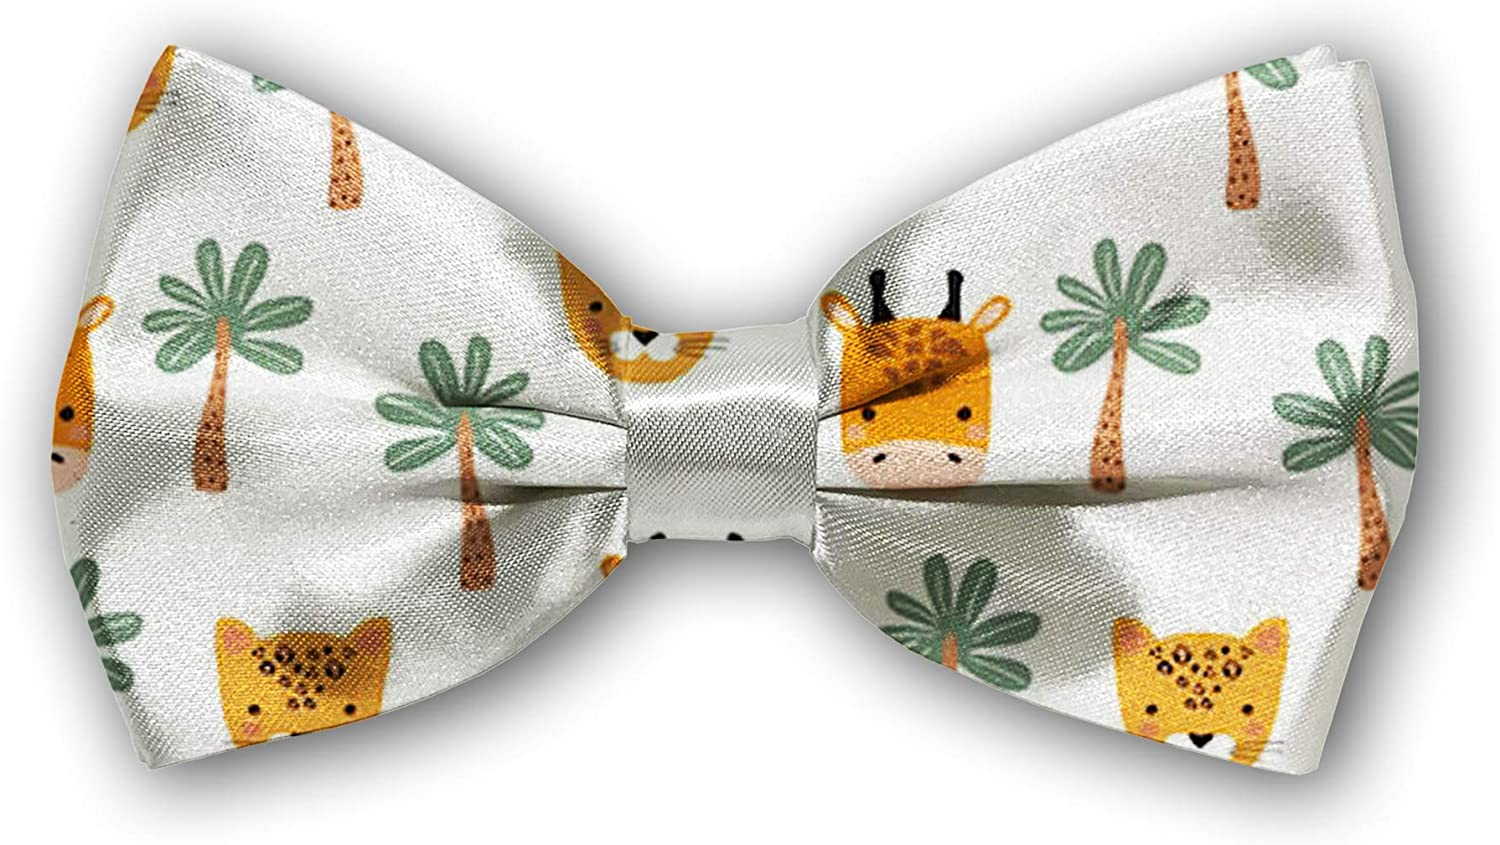 Bow Tie Tuxedo Butterfly Cotton Mens for Adjustable Bowtie Outlet Max 43% OFF SALE Boys